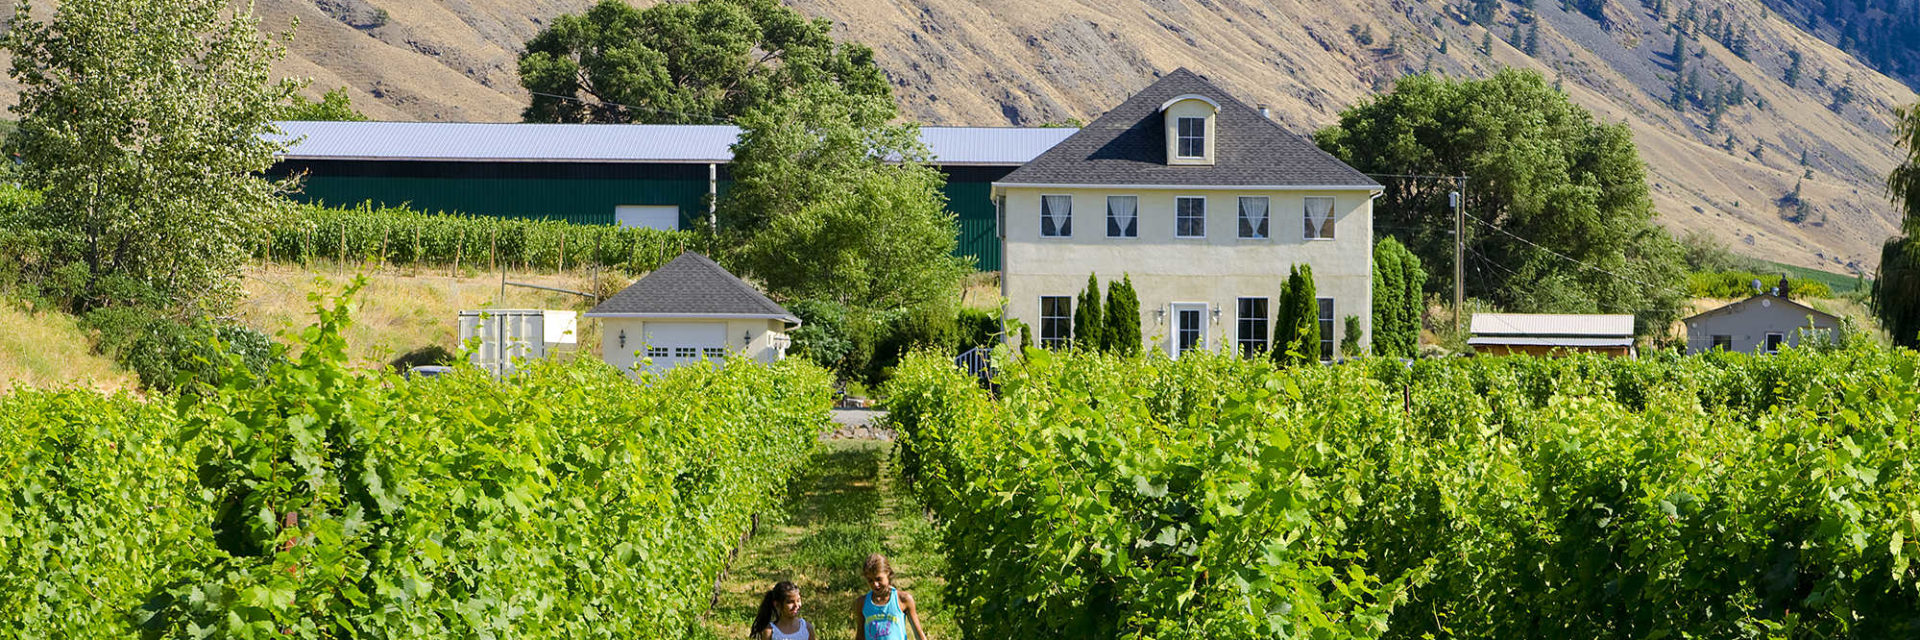 Orchard and Vineyard Stays in the Similkameen